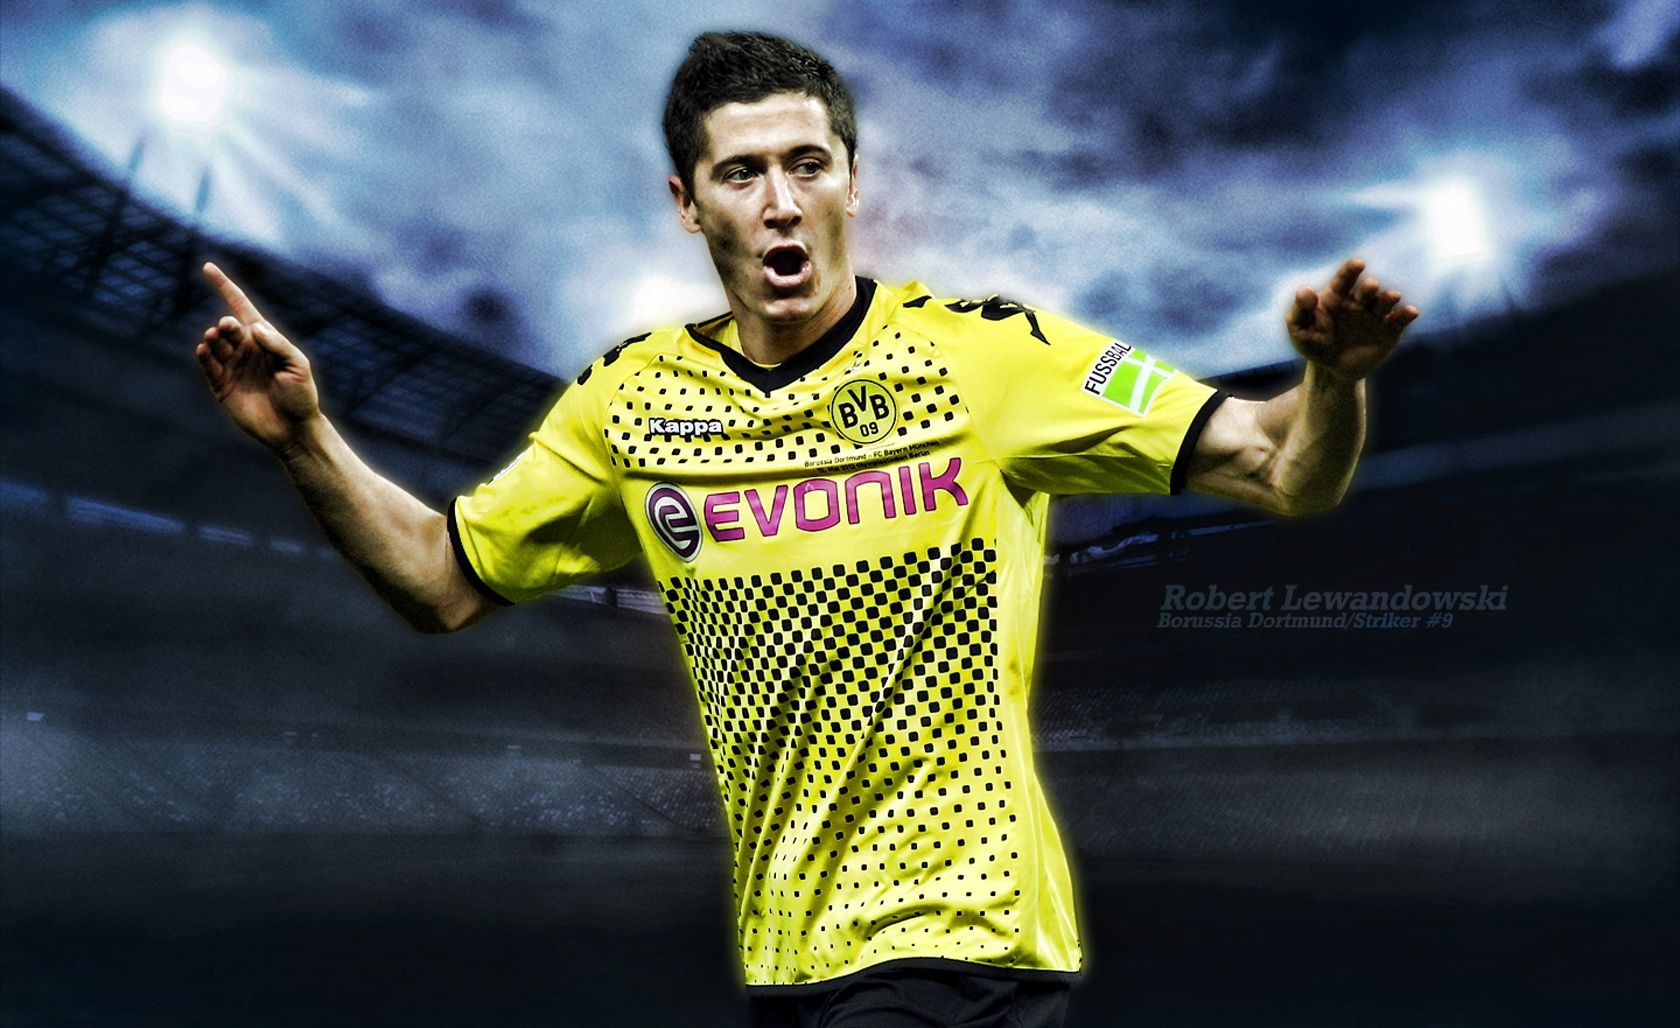 5. ROBERT LEWANDOWSKI-